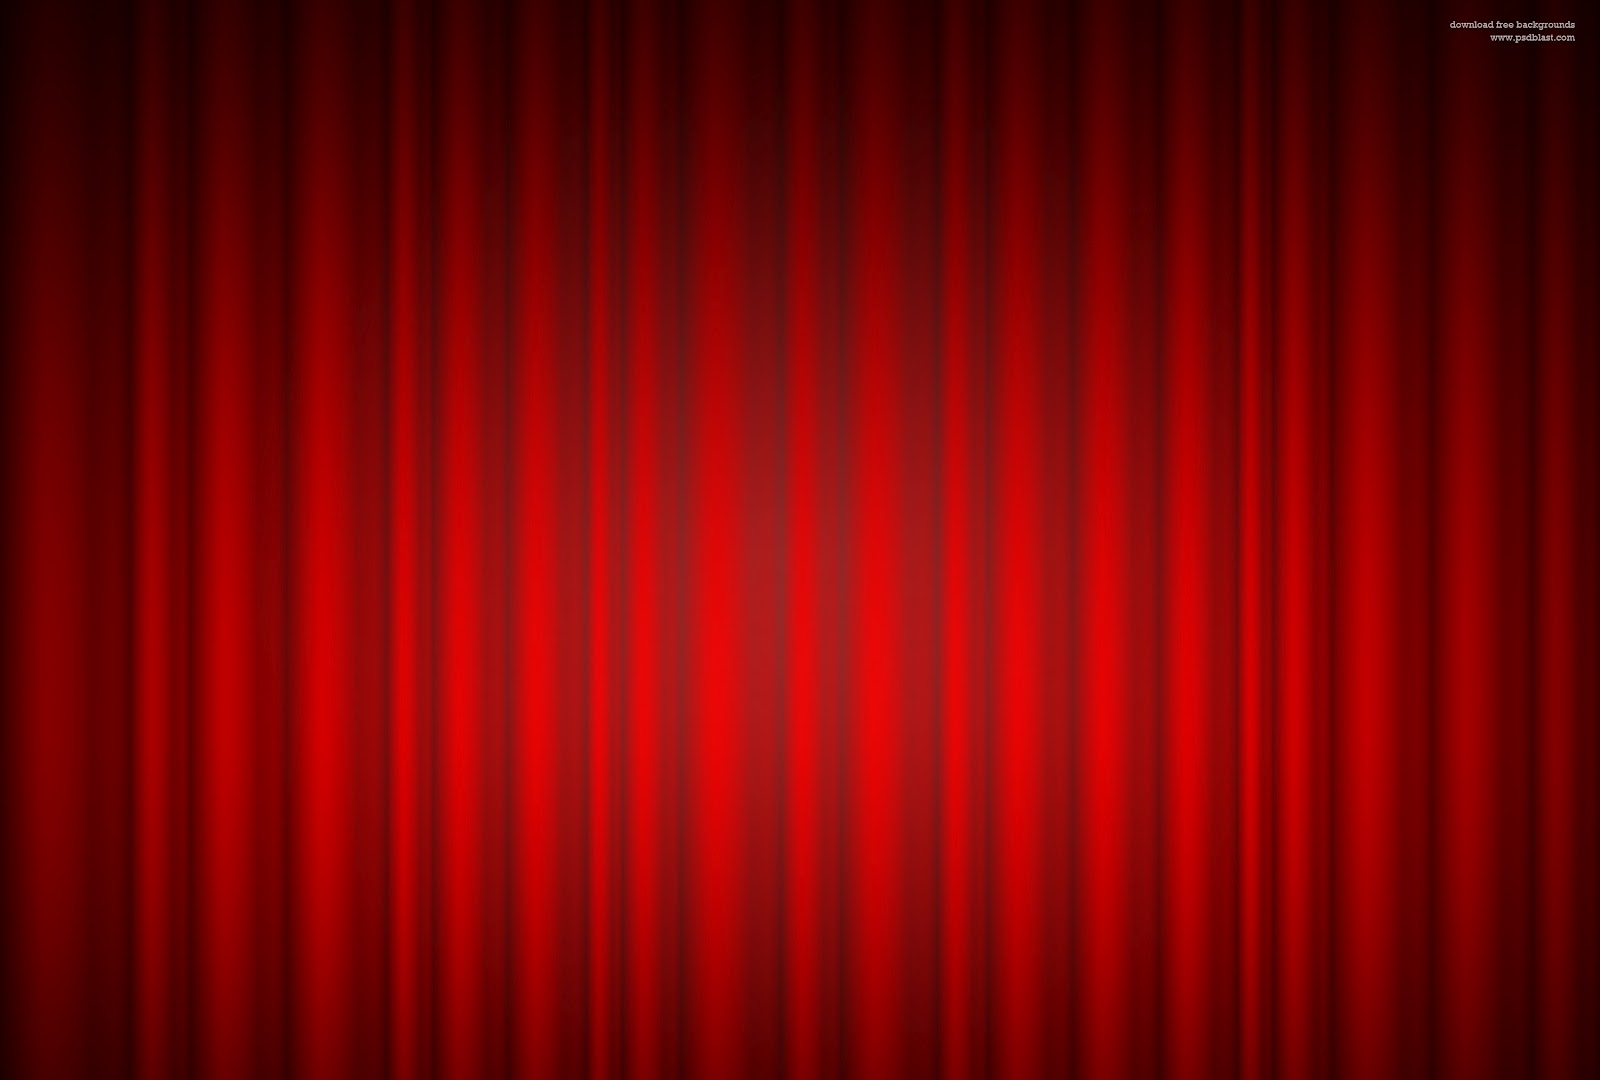 wallpapers red curtain background - photo #8